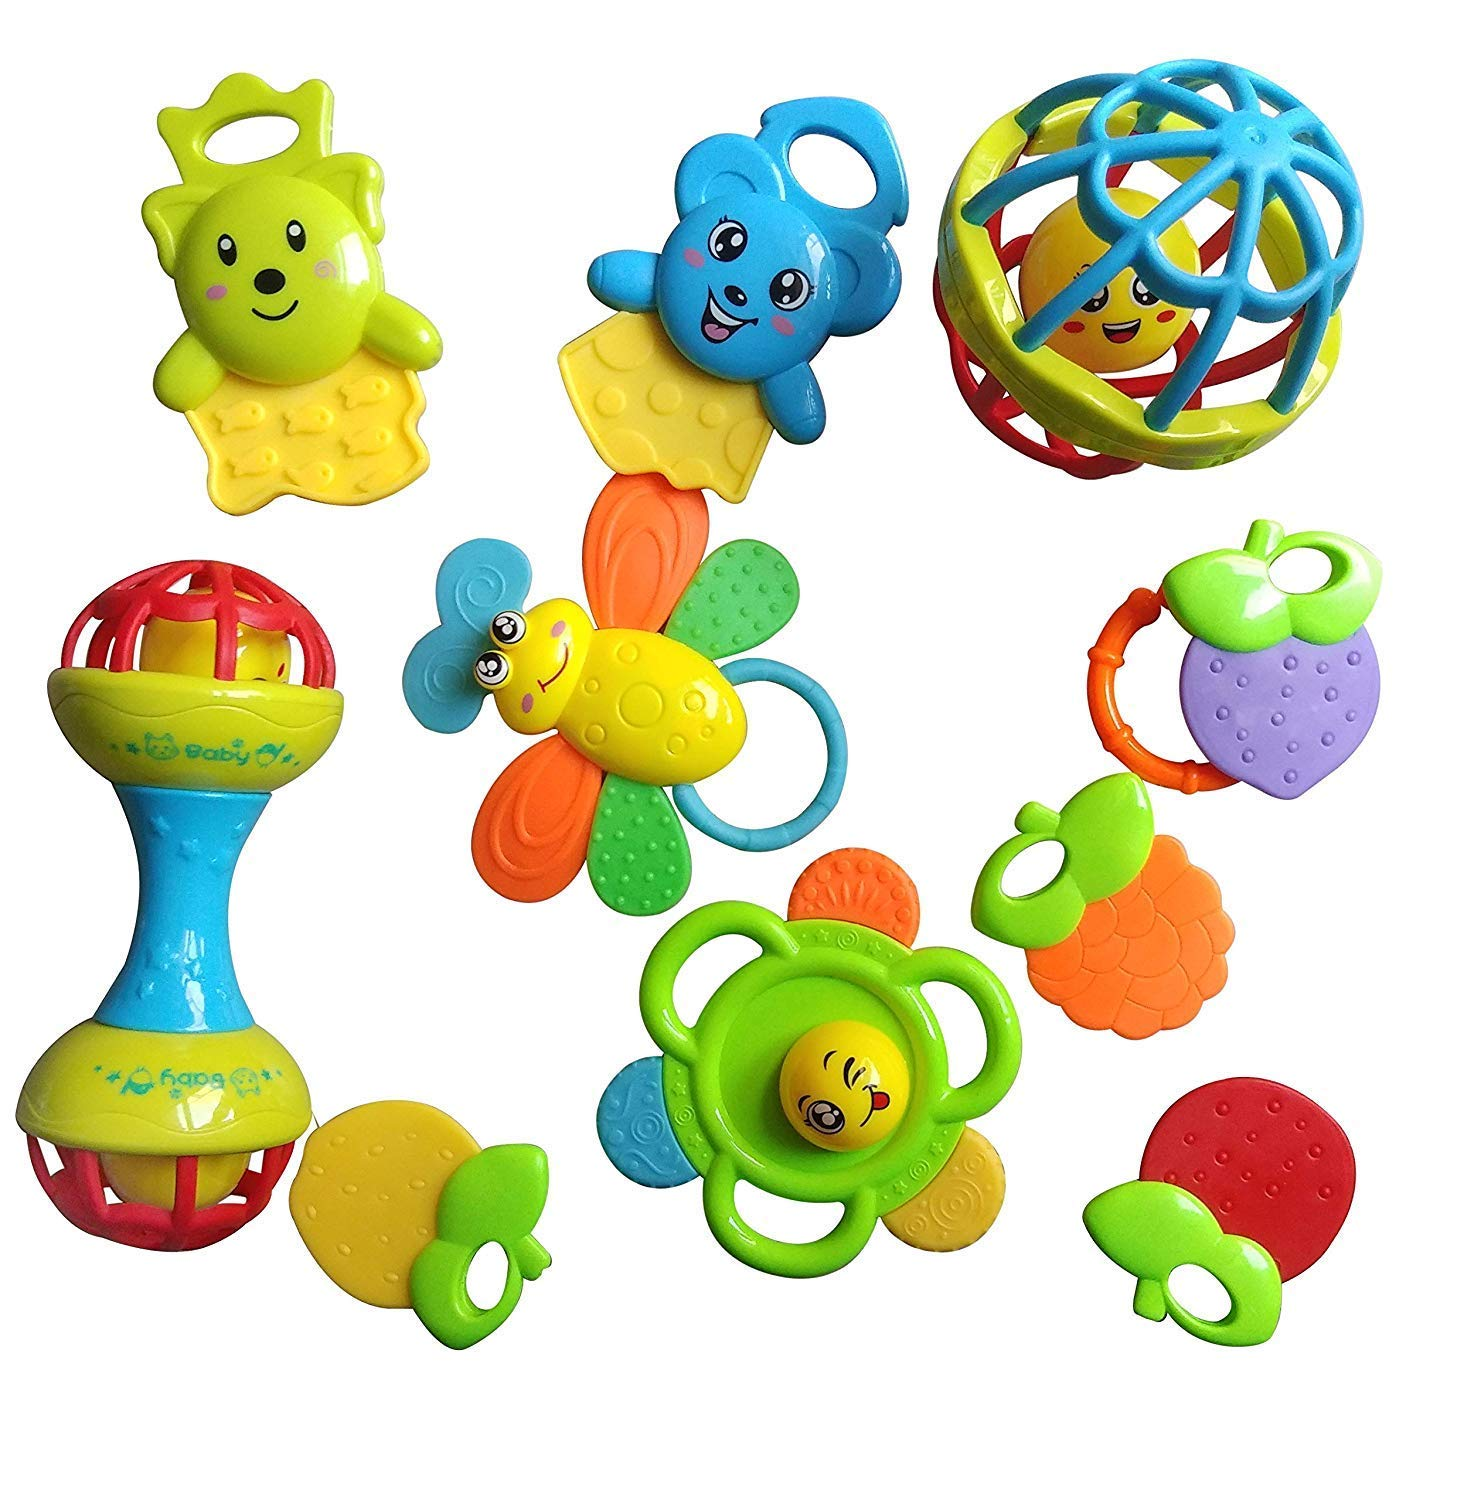 Techhark Rattles and Teether for Babies, Big Size.